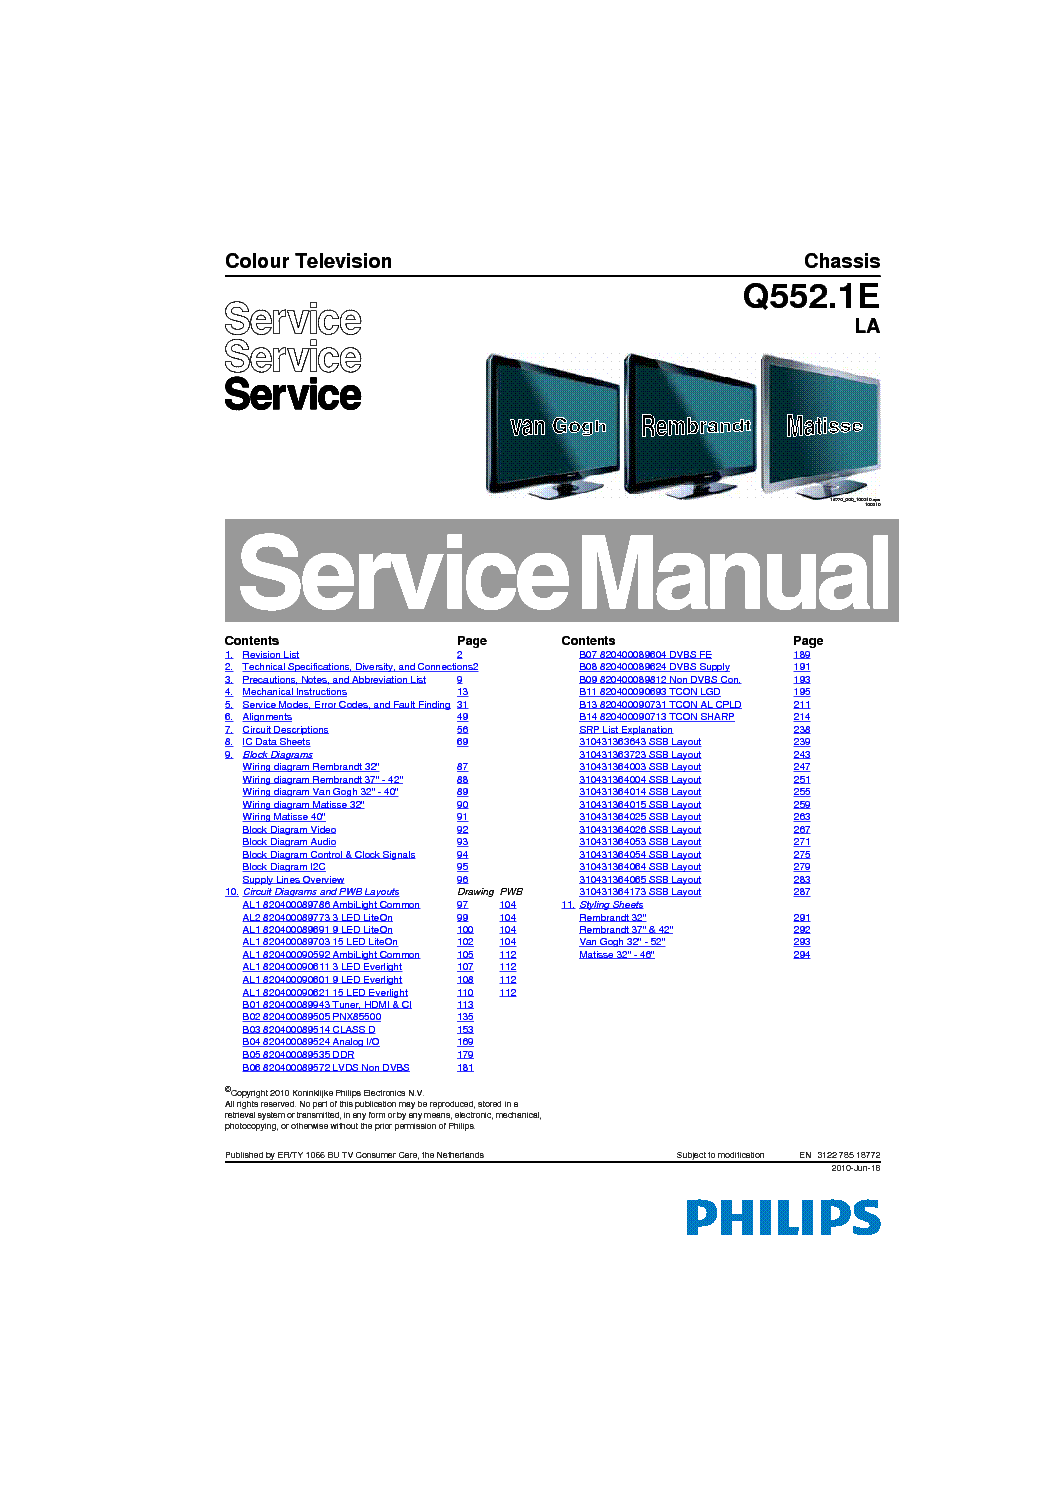 PHILIPS CHASSIS Q552.1E-LA service manual